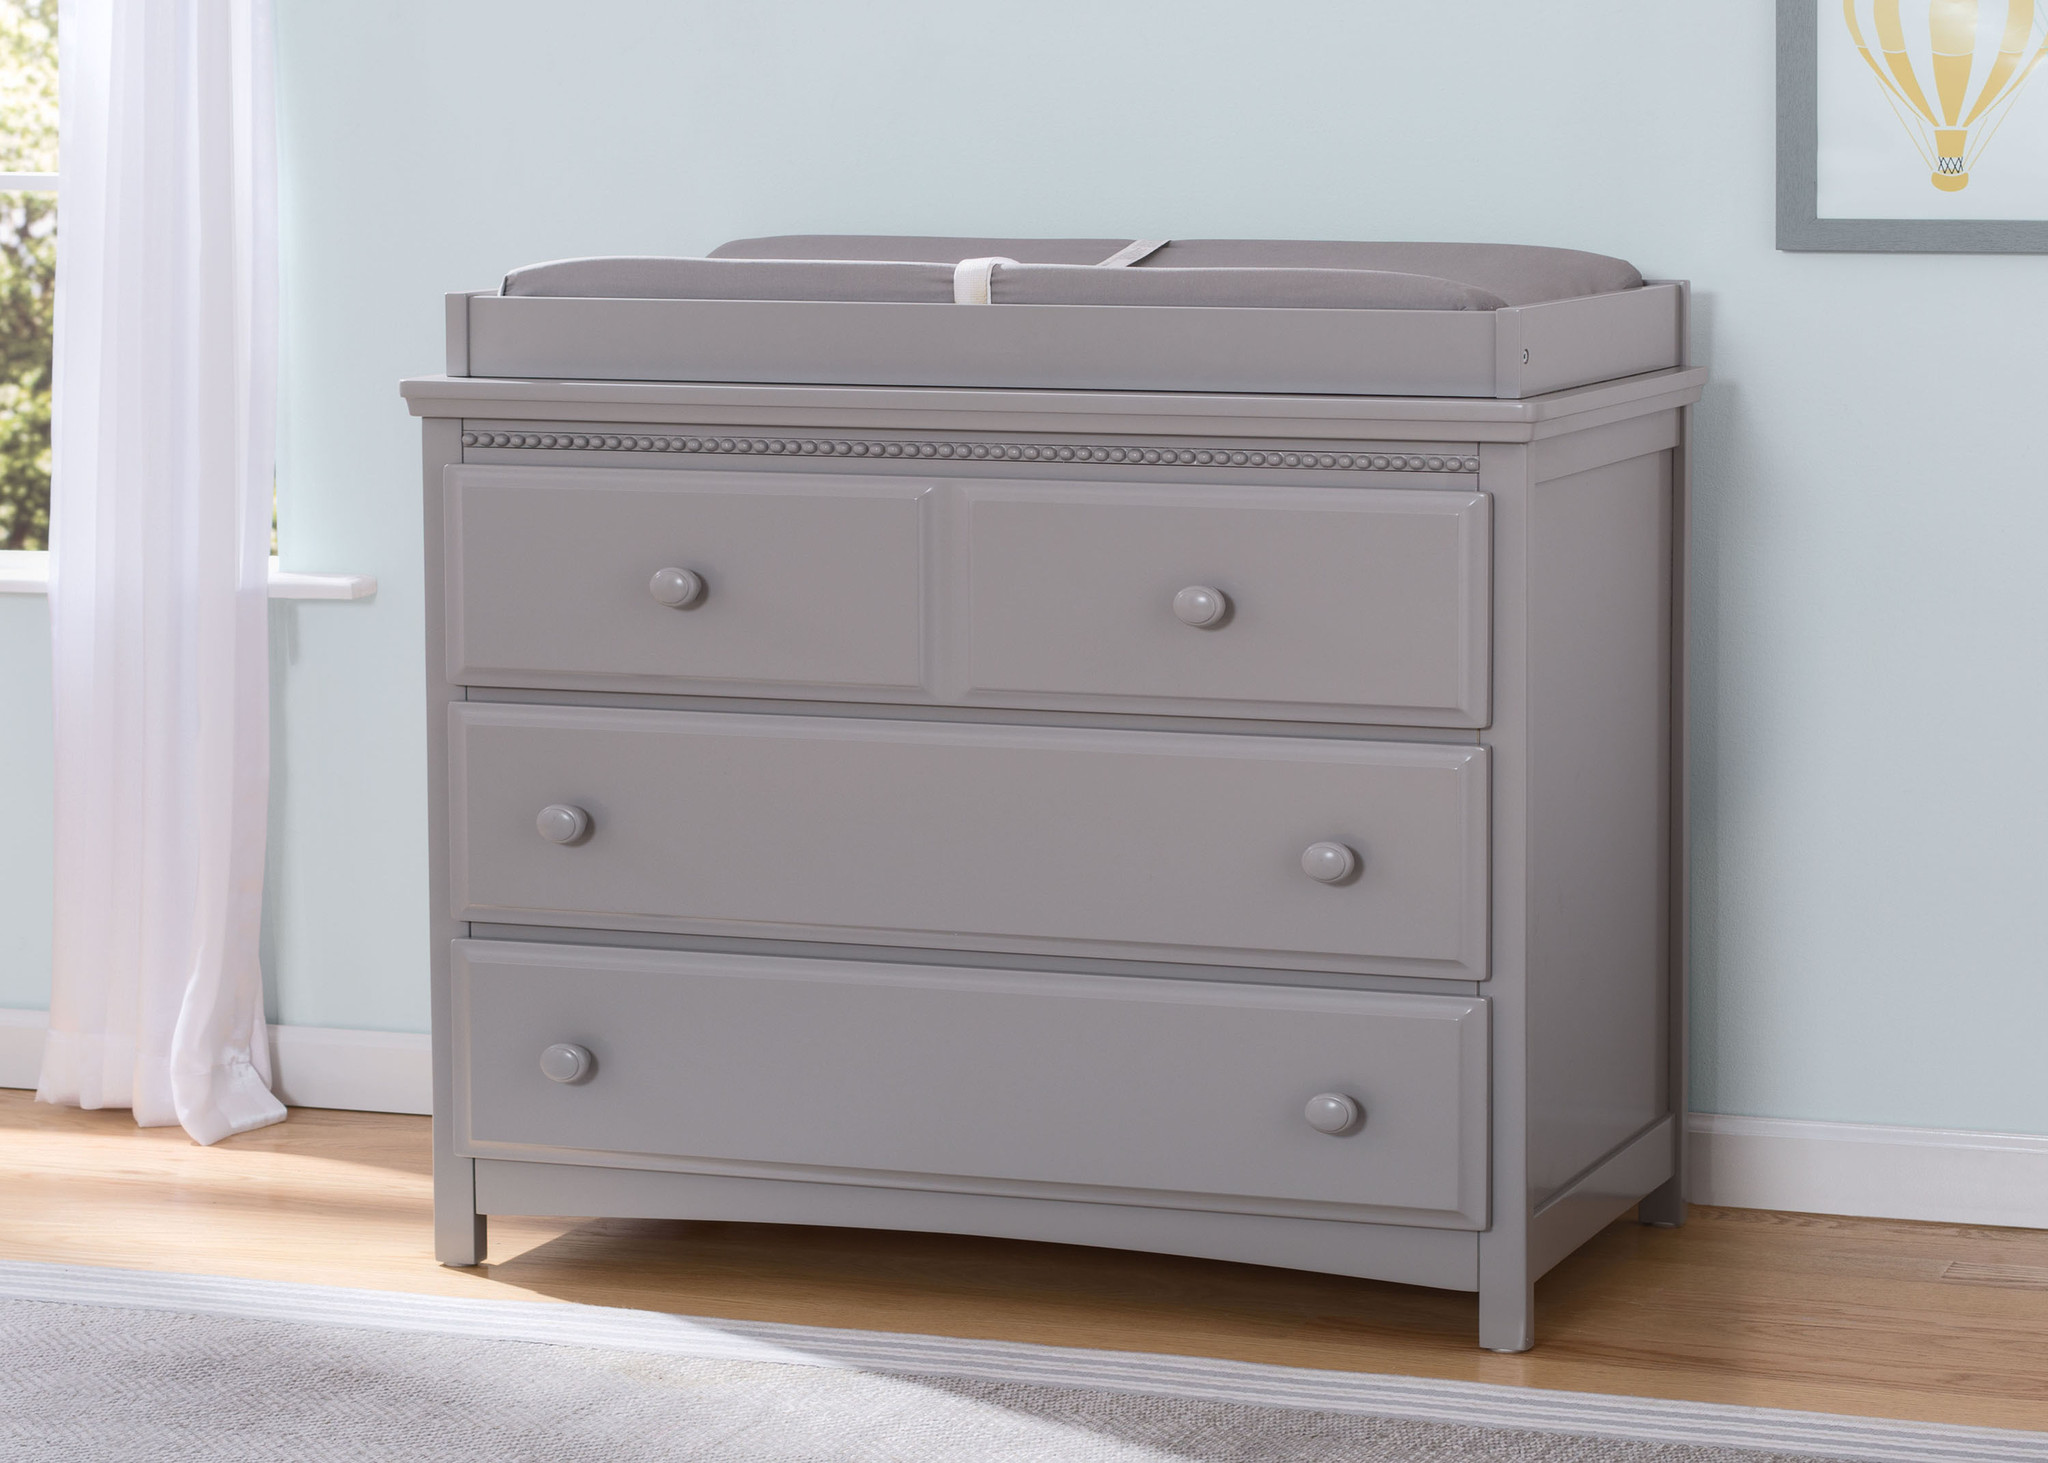 Changing Table and Dresser | Black Changing Table Dresser | Changing Table Dresser